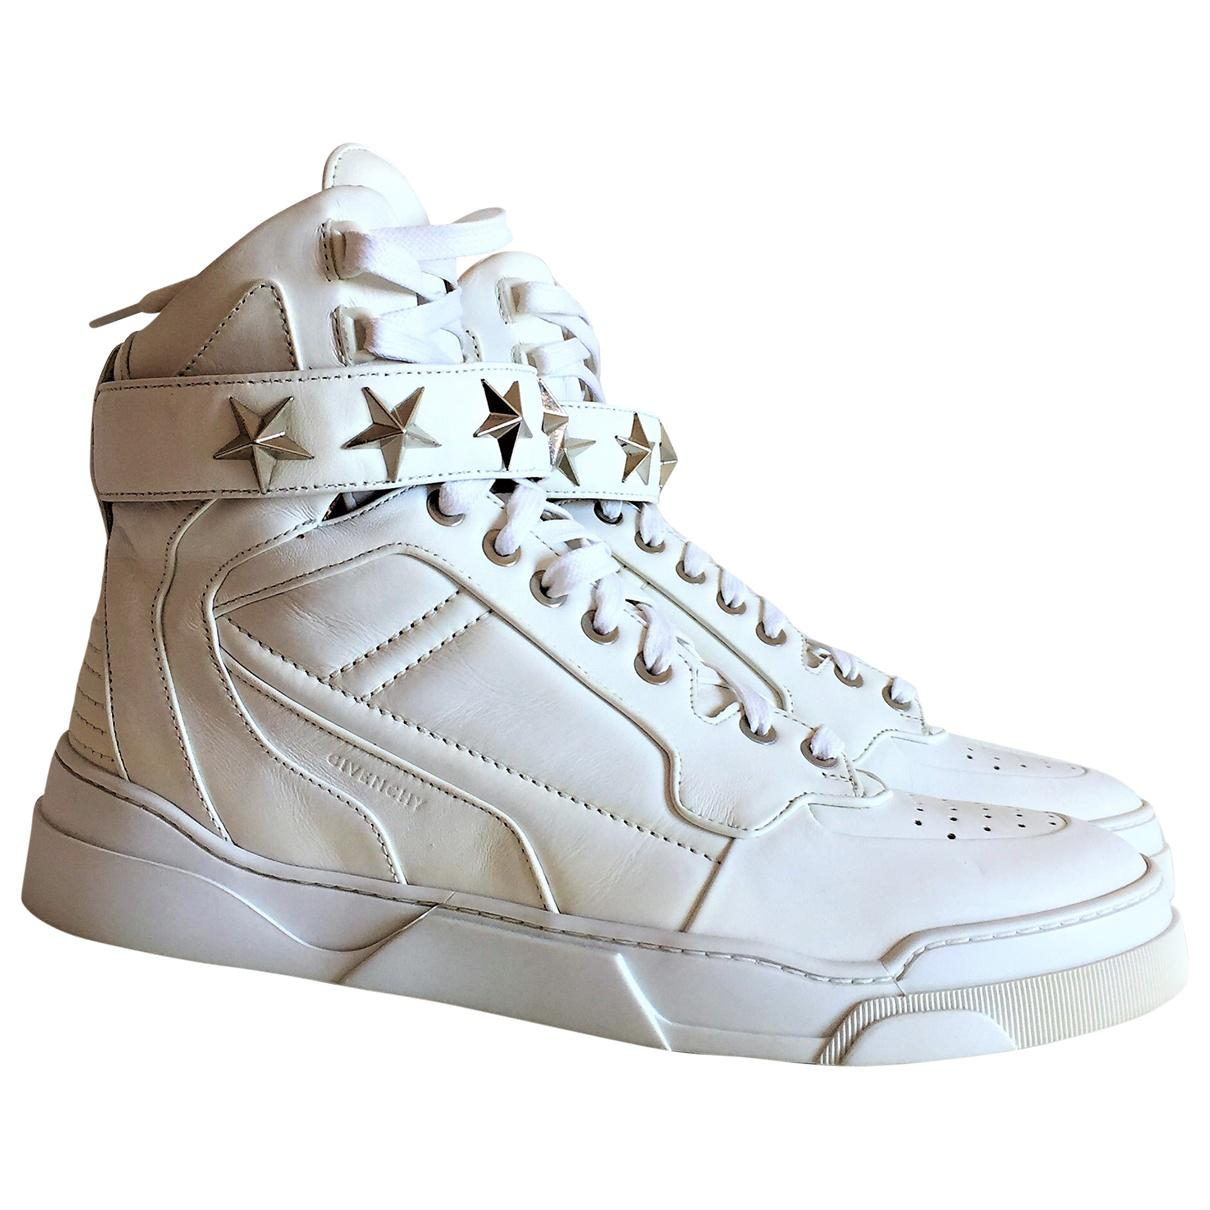 5537337ac93 Lyst - Givenchy Pre-owned Leather High Trainers in White